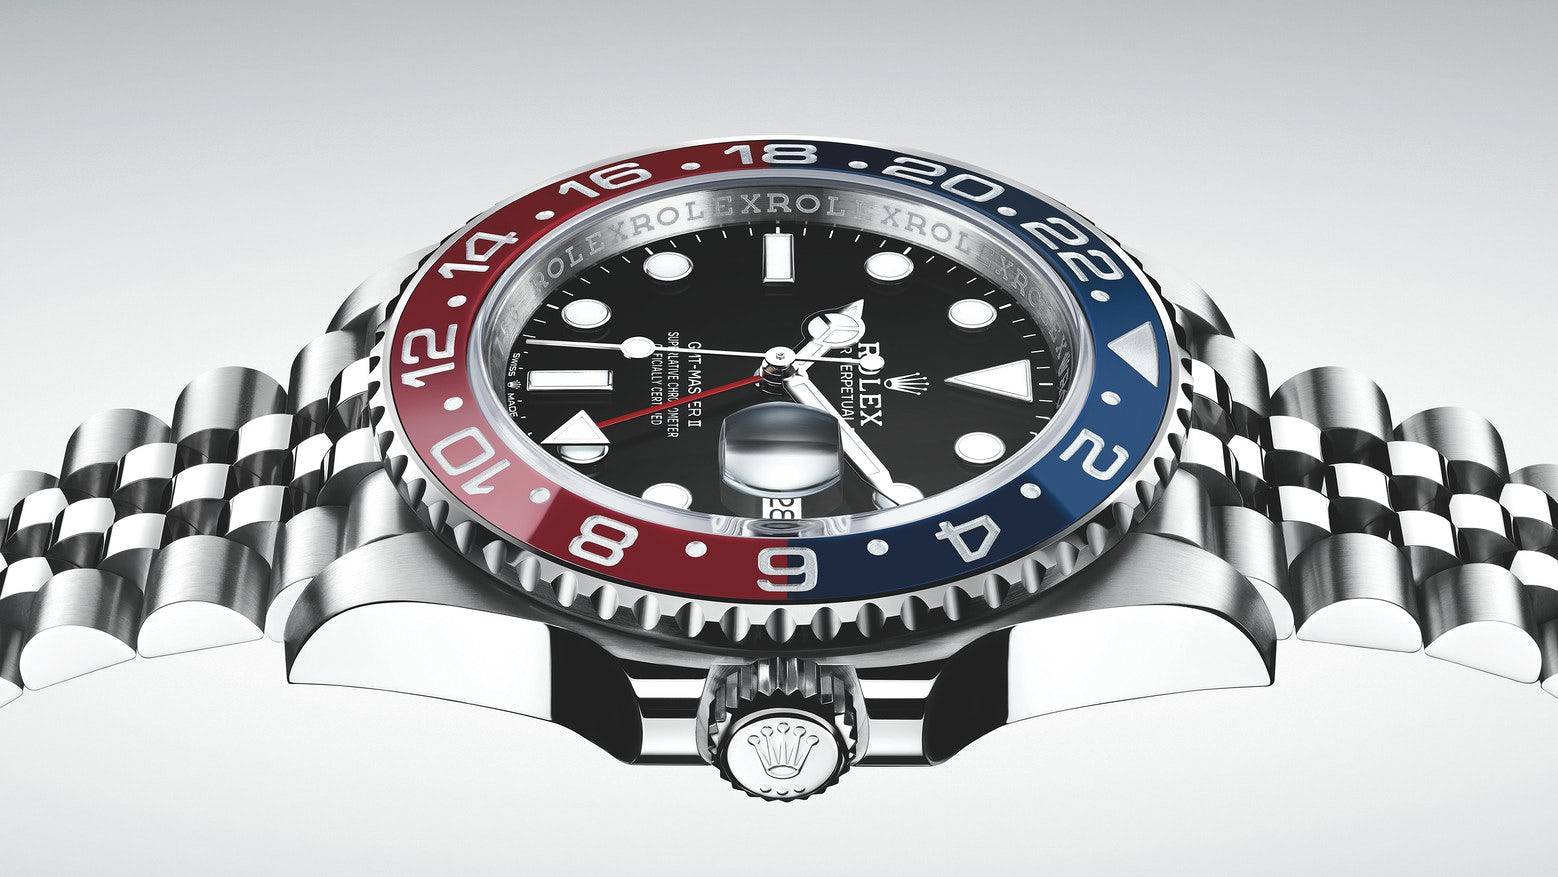 The new Rolex Oyster Perpetual GMT-Master II watches are destined for holy grail status